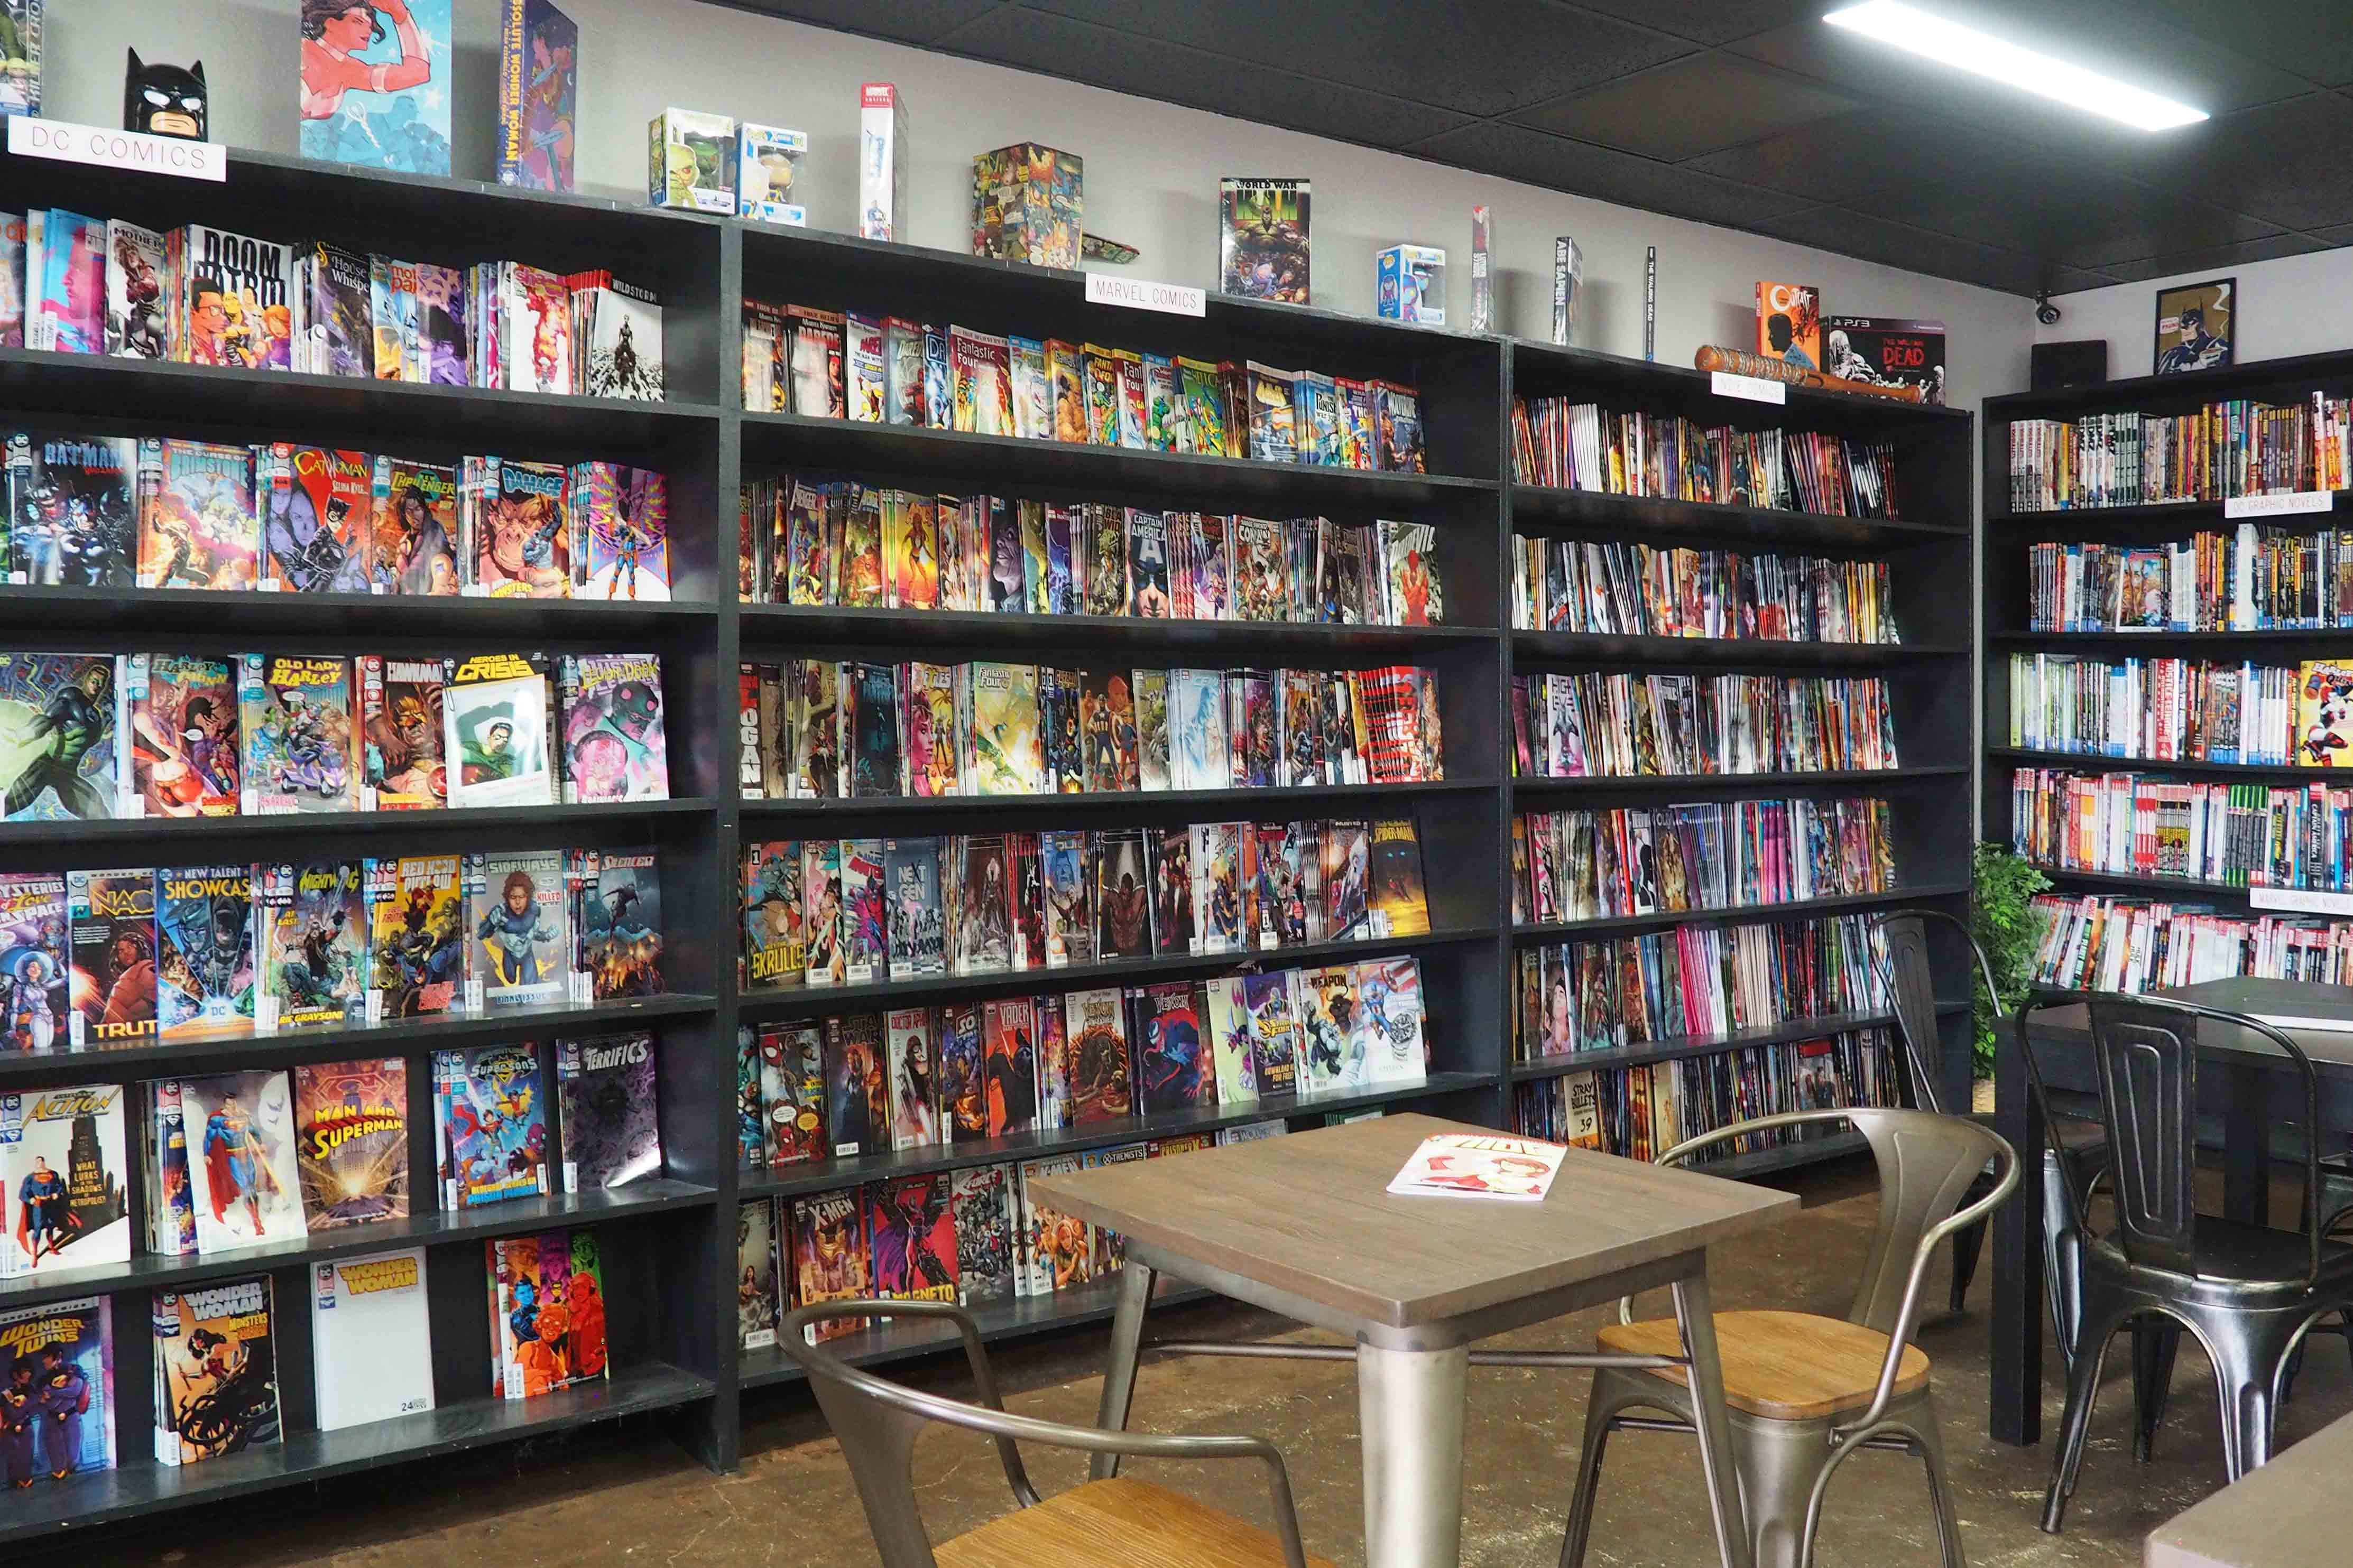 Shelves of Comic Books at Panels Coffee